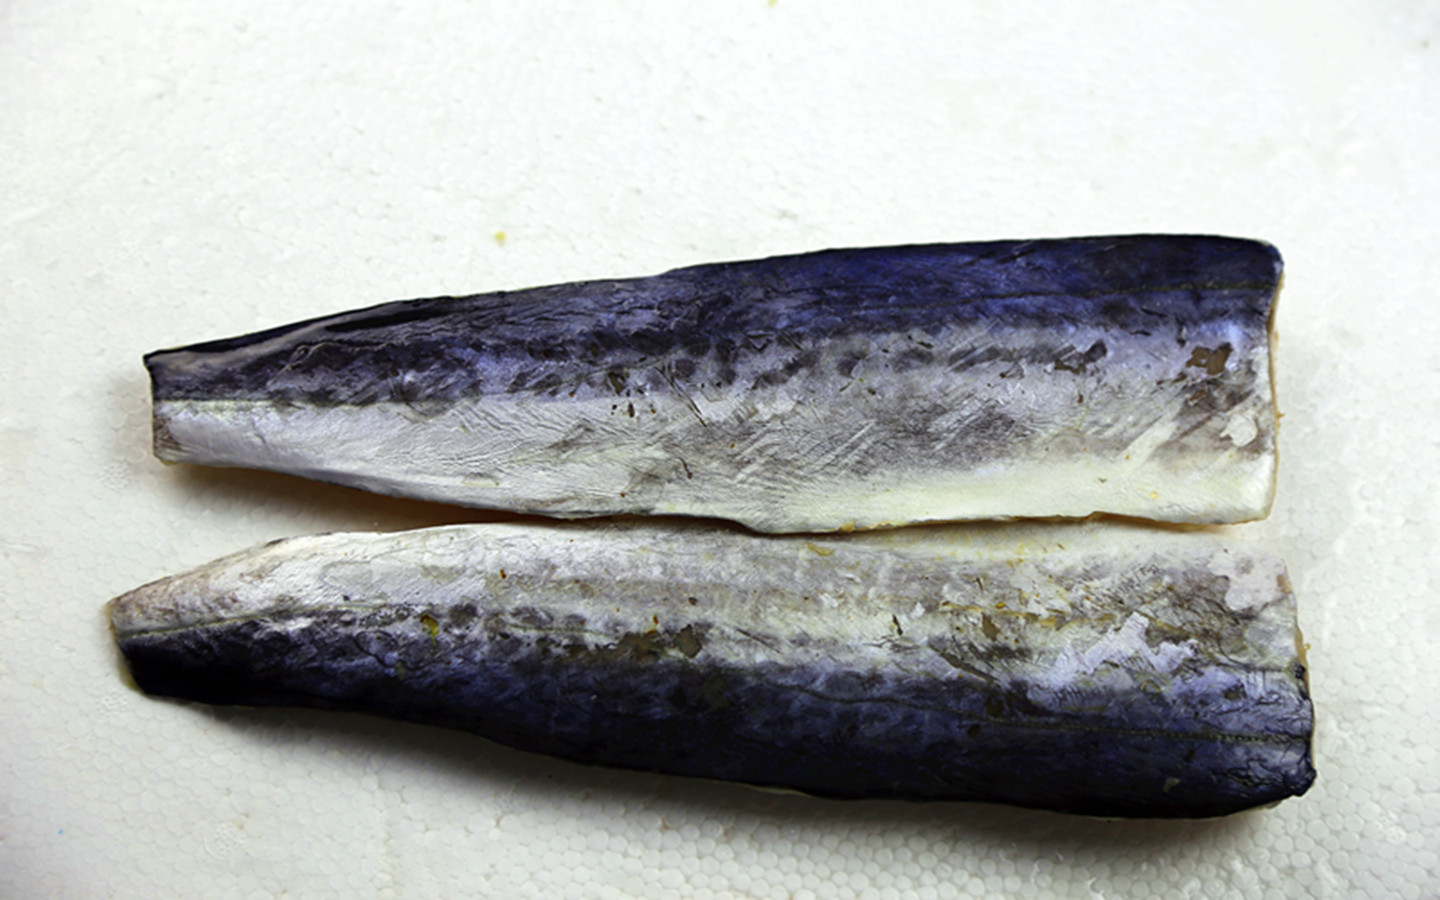 Spanish Mackerel Fillet in Good Quality